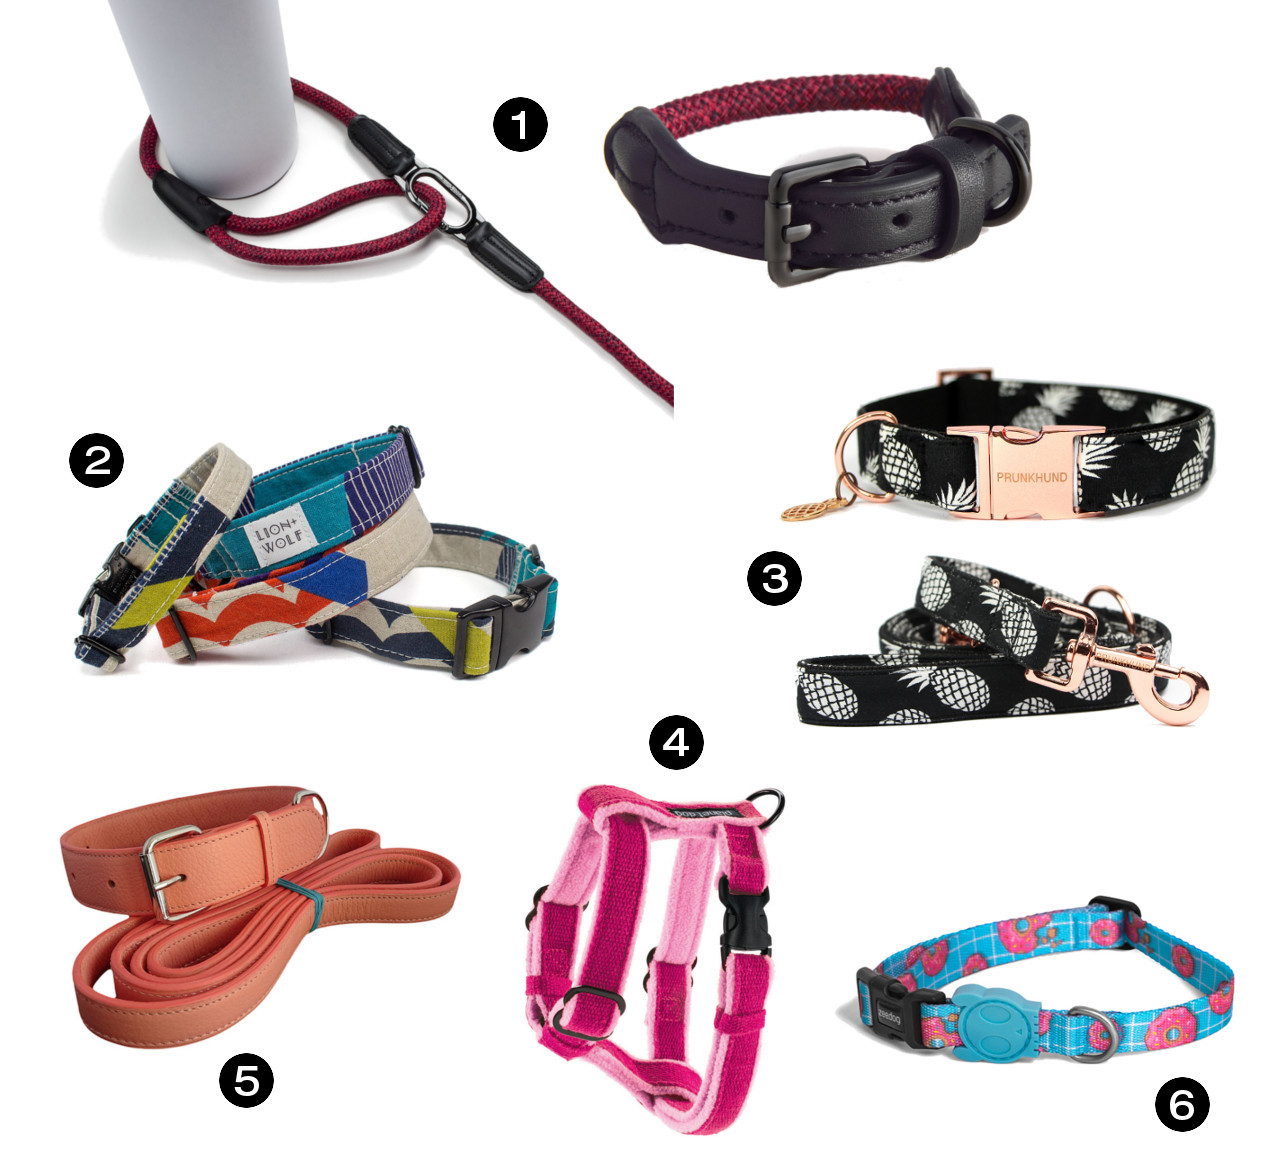 Dog Milk Holiday Gift Guide: 12 Awesome Collars, Leashes, & Harnesses